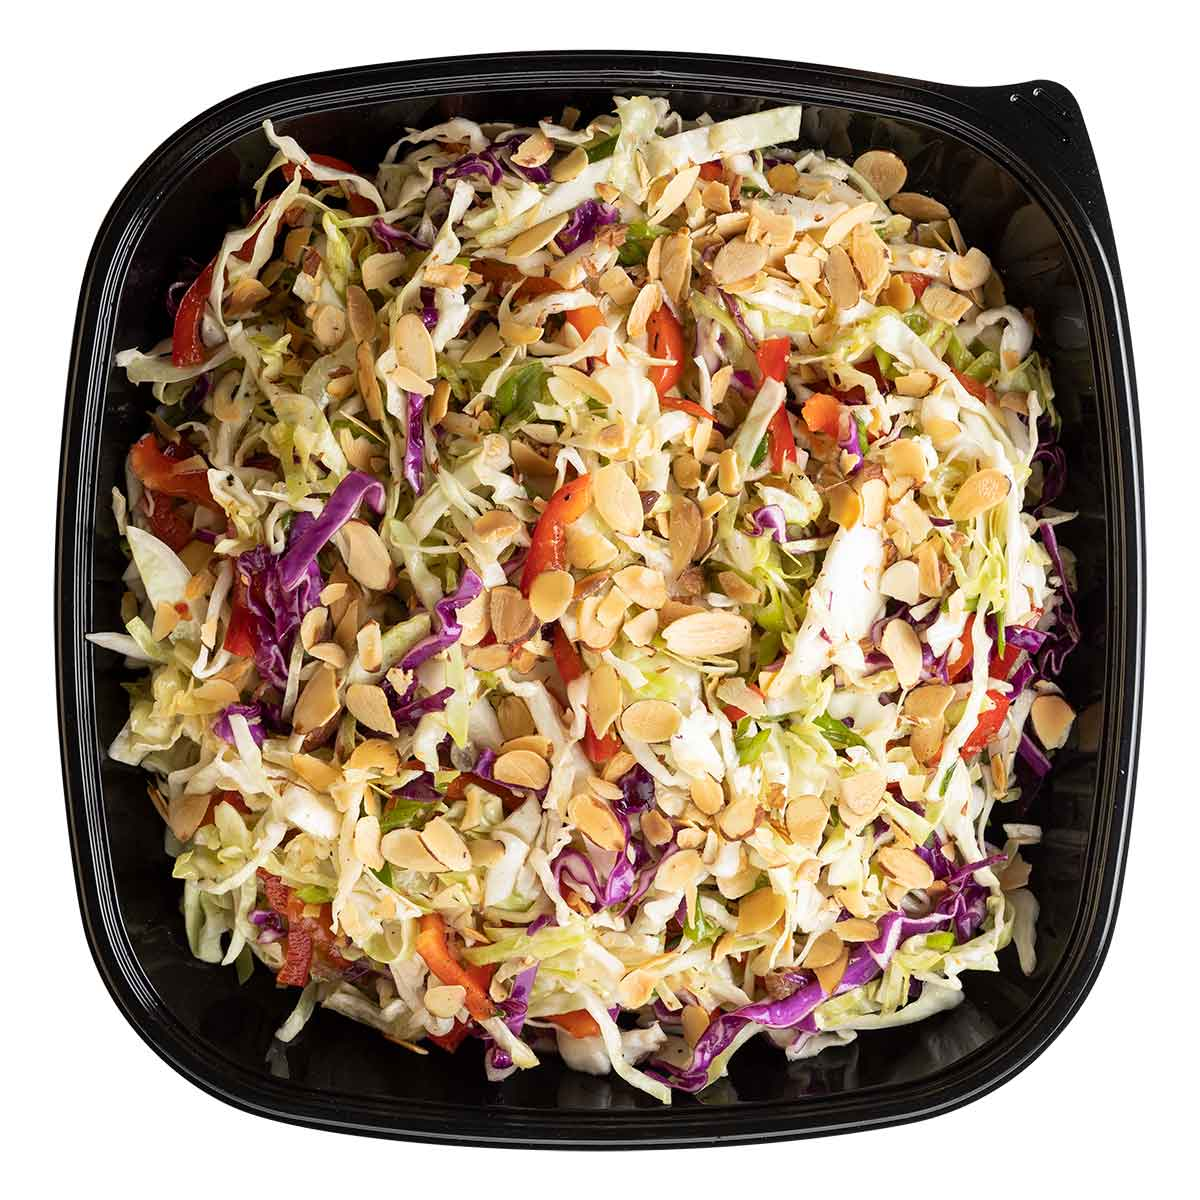 Coleslaw with shaved almonds, red cabbage and bell peppers in a square bowl